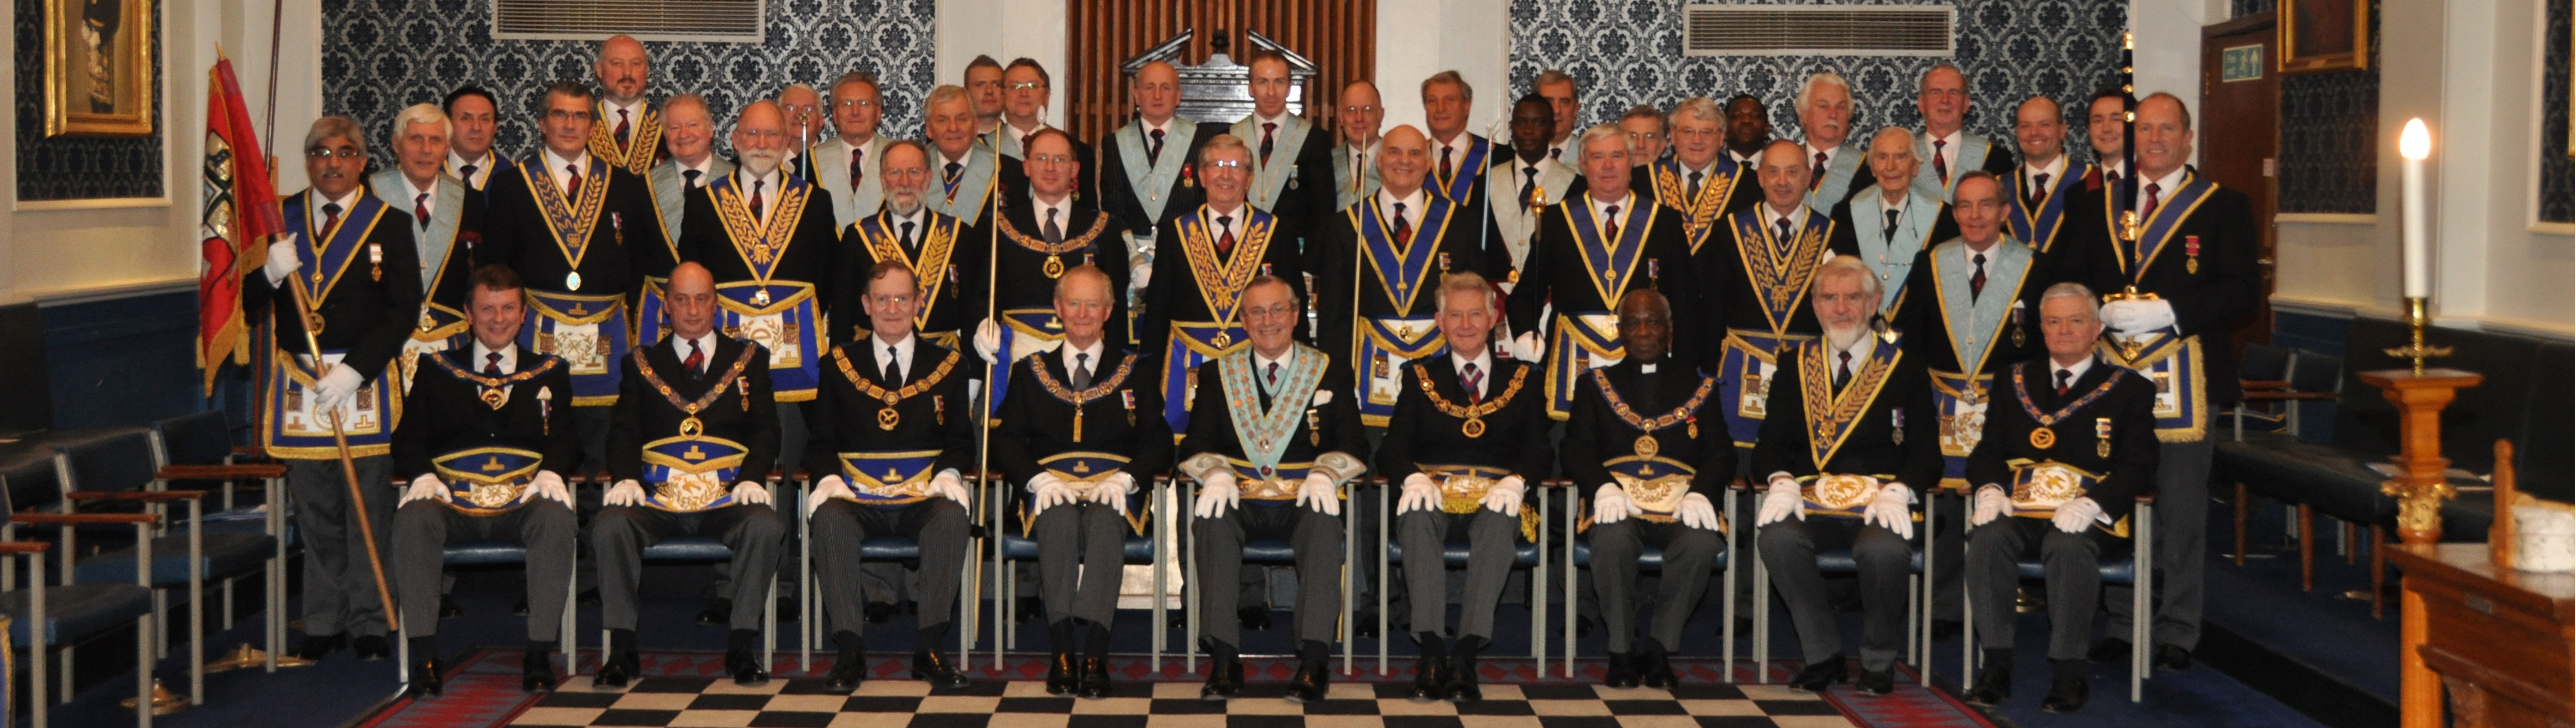 Our Bicentenary 2010